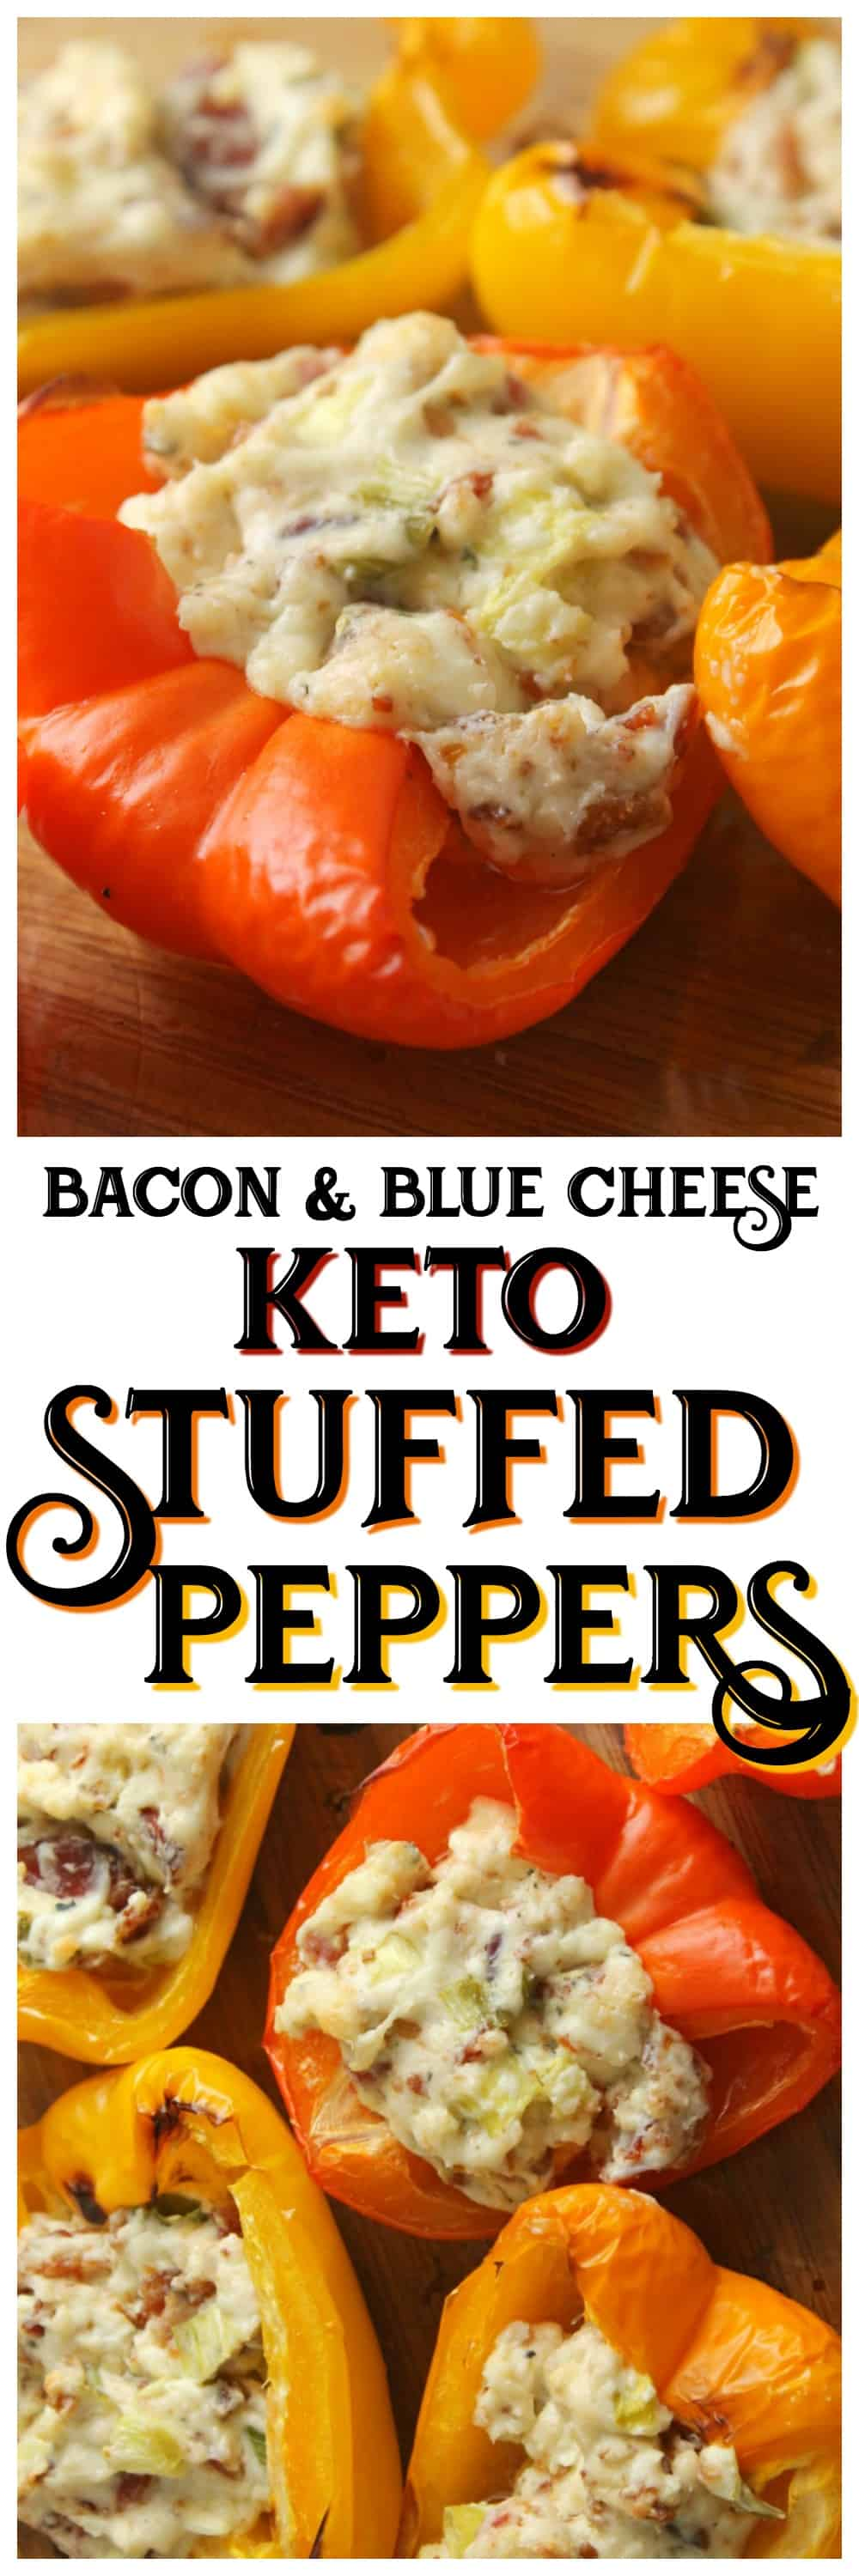 bacon and blue cheese stuffed bell peppers